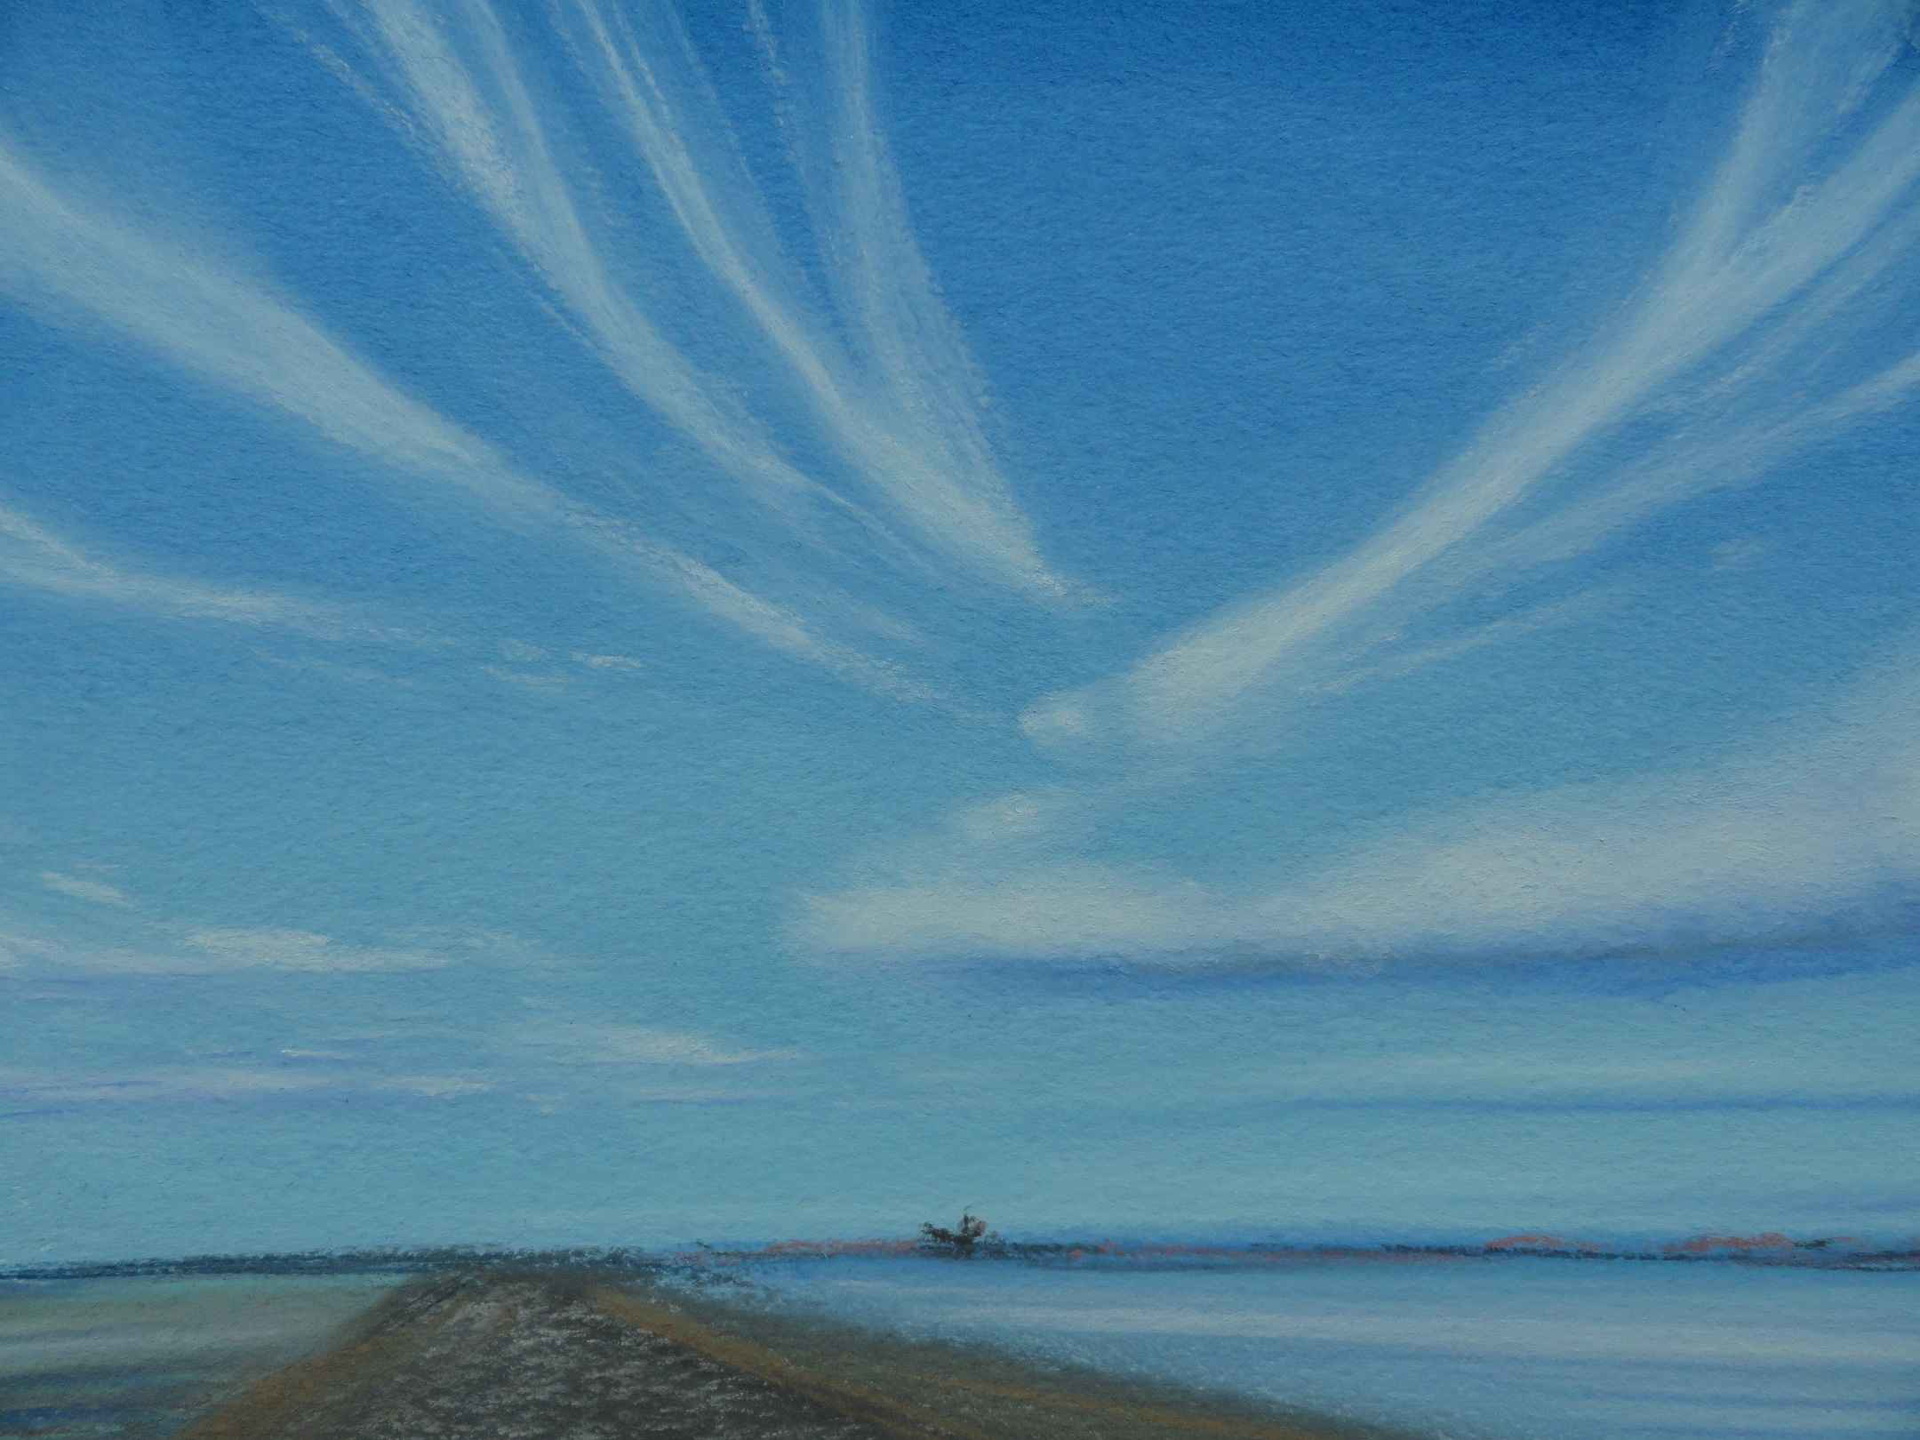 Ocean Highway Wispy by Sue Sneddon